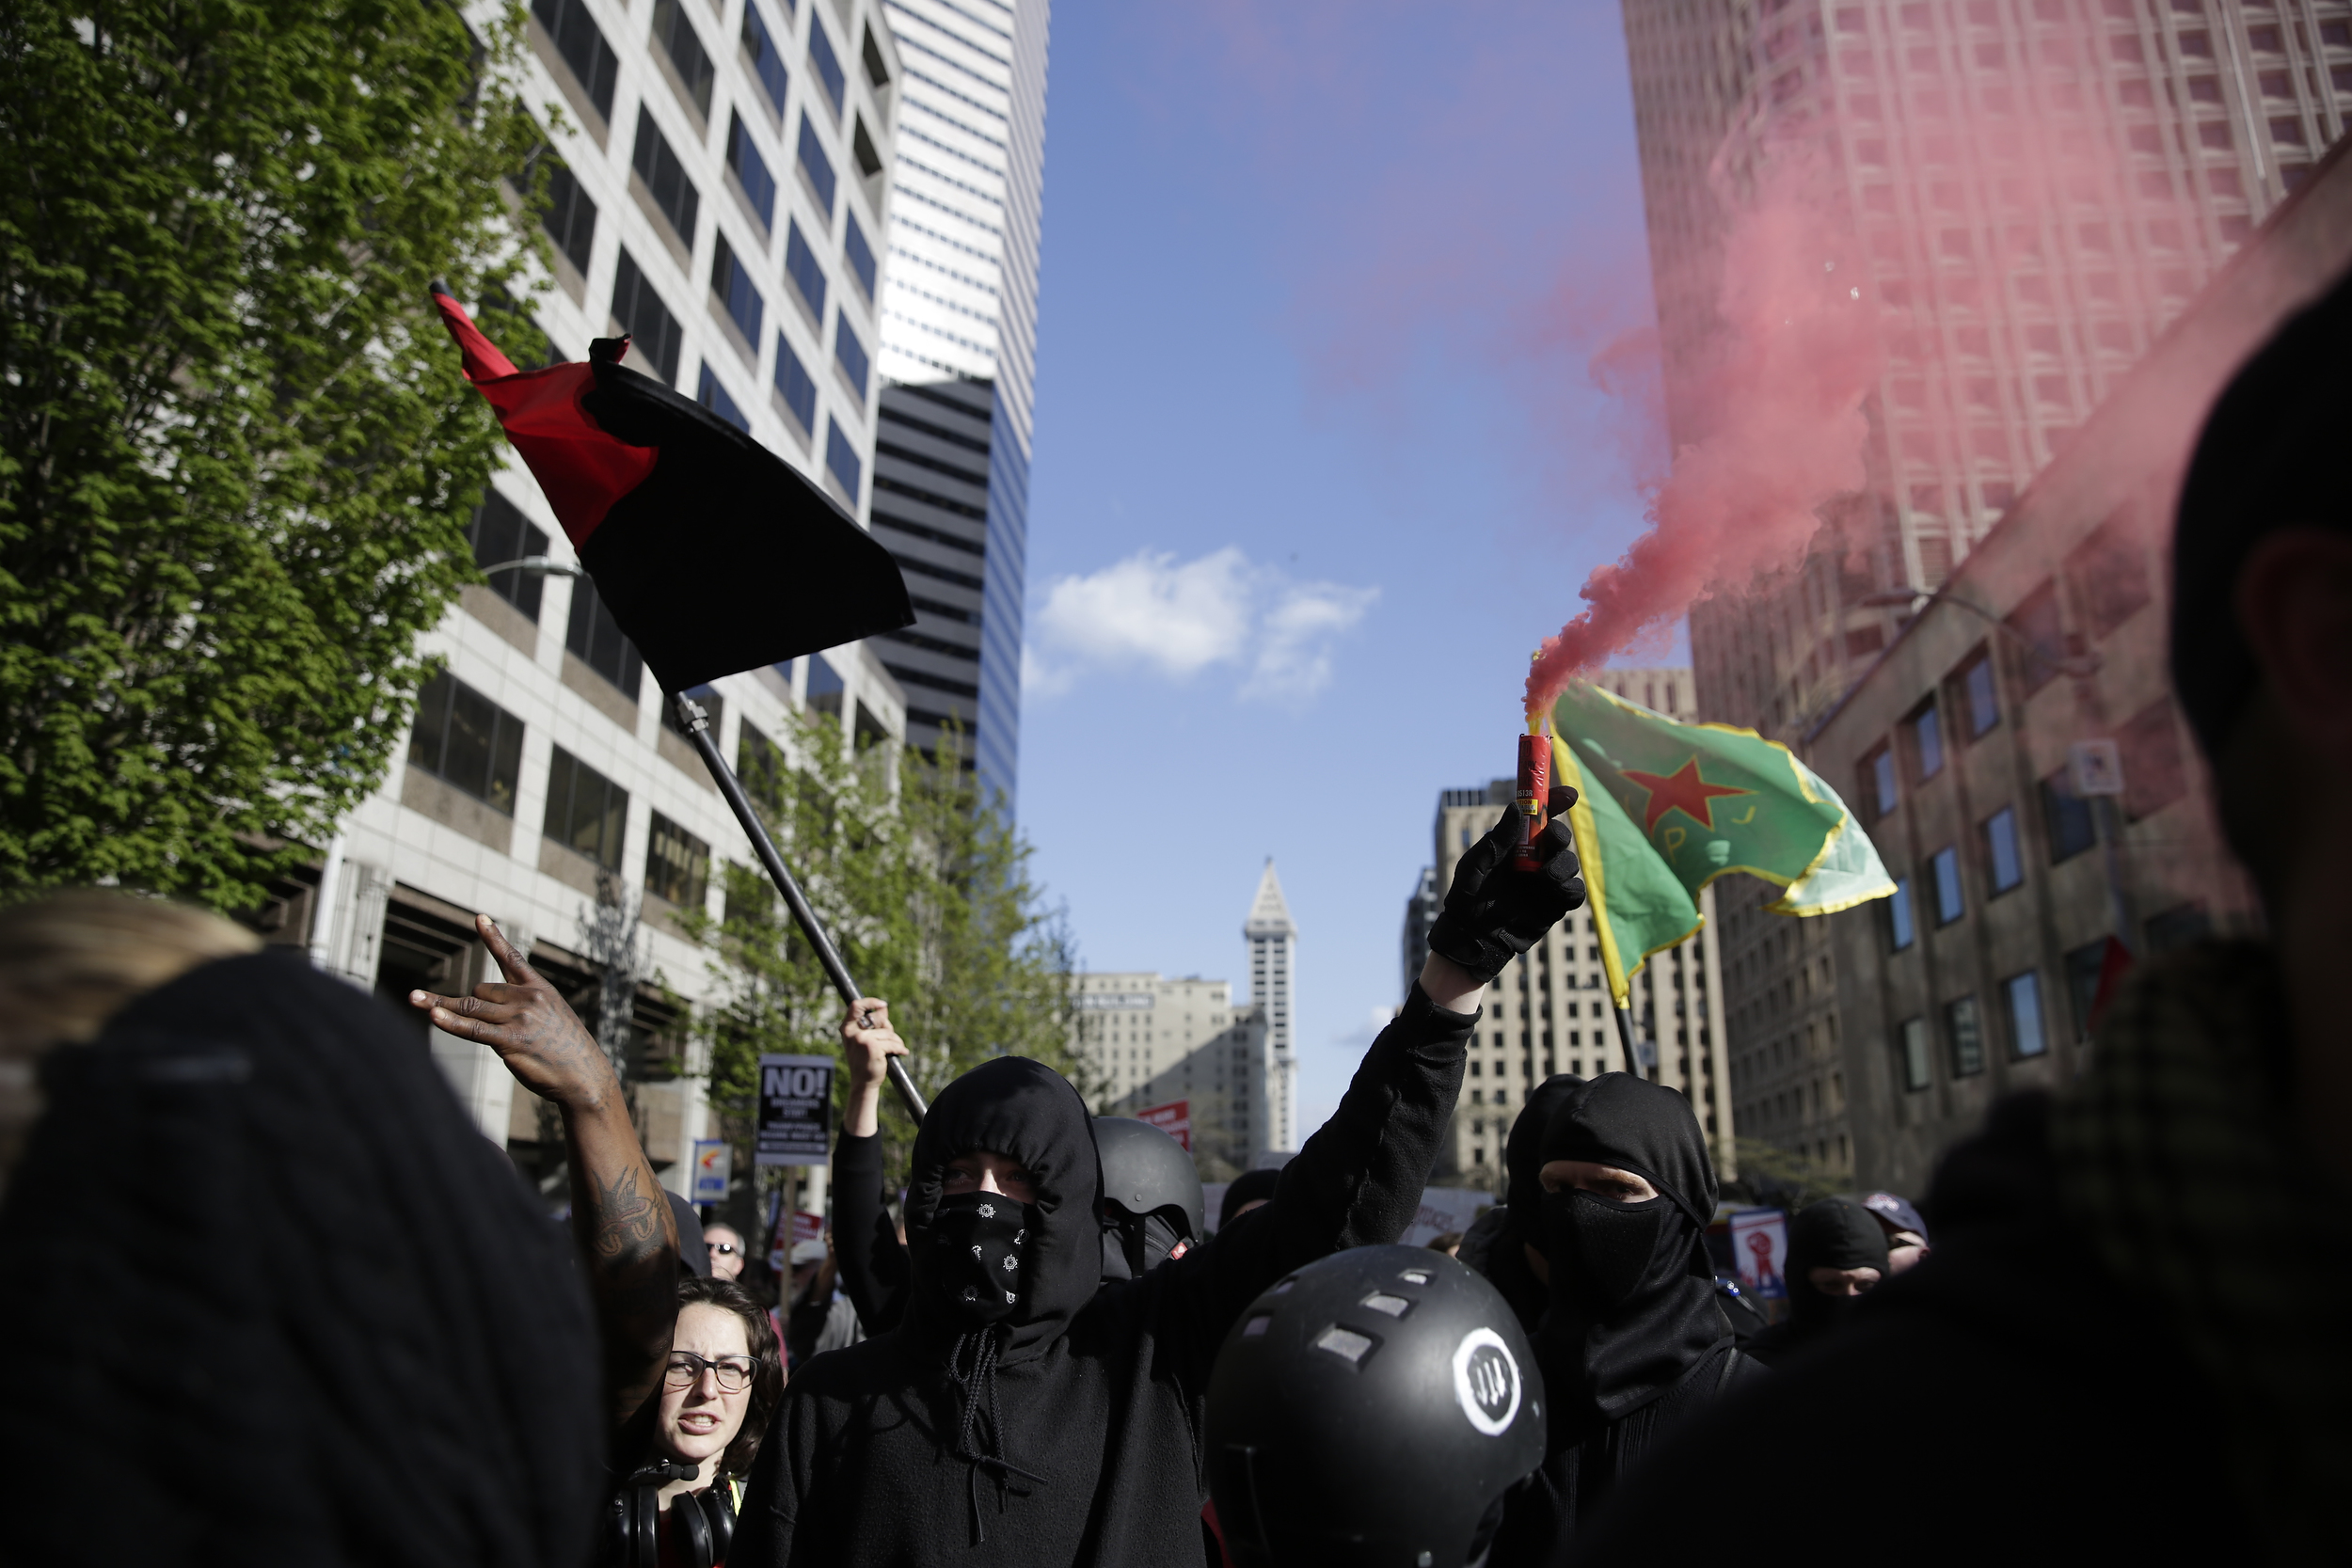 Individuals dressed in black, who wished to remain anonymous, carry a smoke flare and march in the annual May Day March for Workers and Immigrant Rights in Seattle, May 1, 2018.